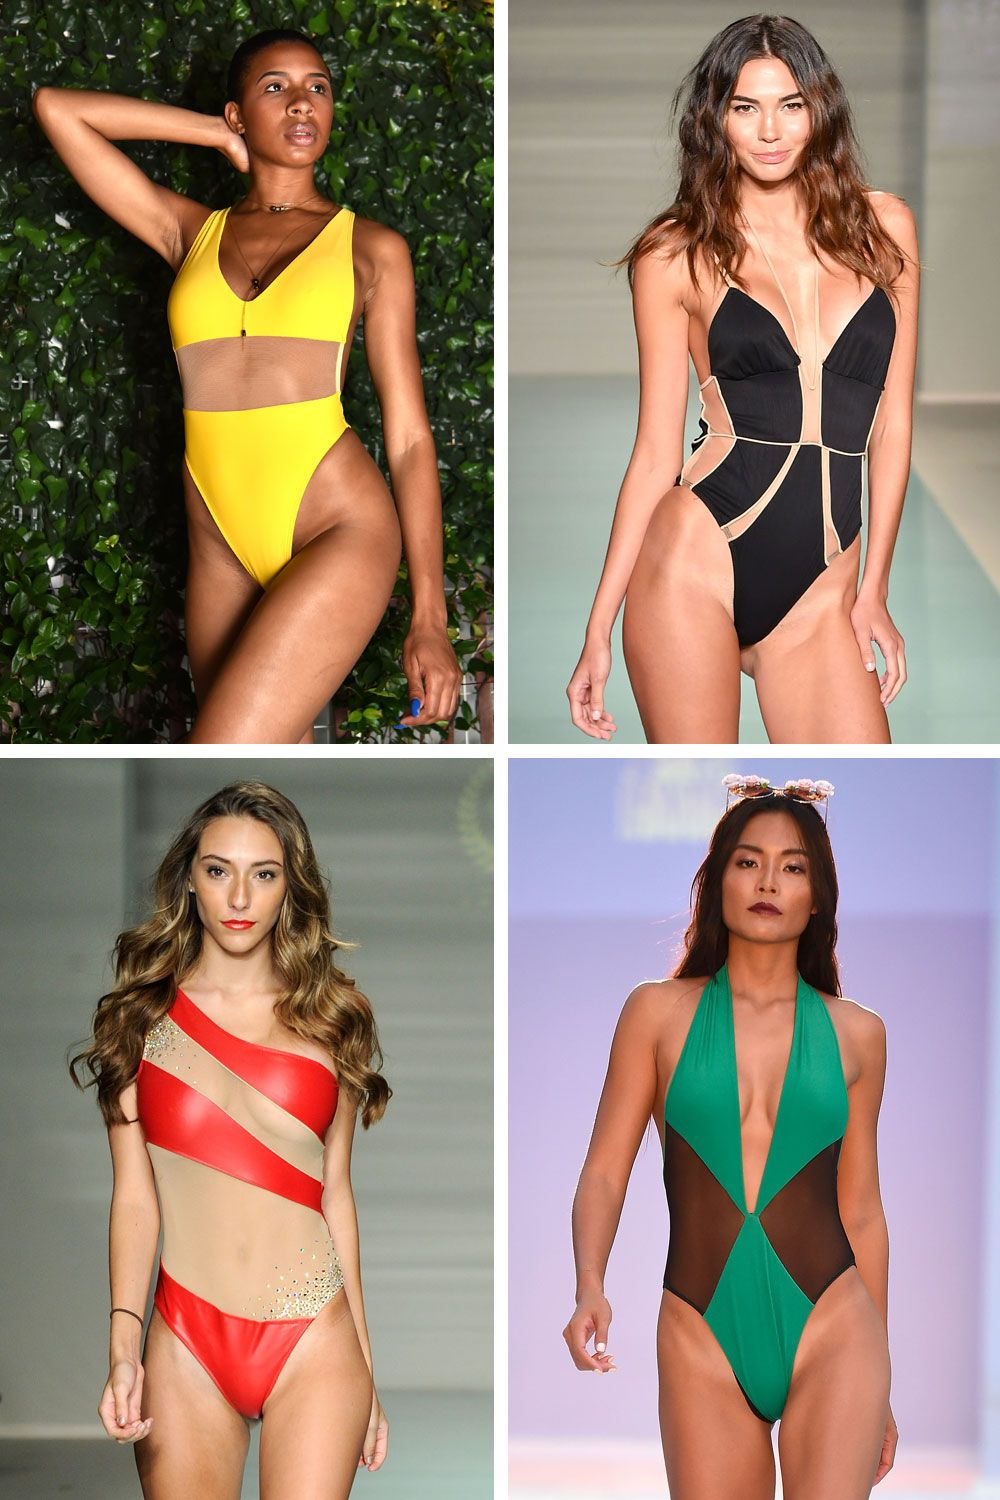 "<p>Bold colors and graphic shapes combine to make some seriously sexy one-pieces. <br></p><p><em>Clockwise from top left: <span class=""redactor-invisible-space"">G Saints, For Love & Lemons, Filthy Haanz, Cirone Swim</span></em></p>"